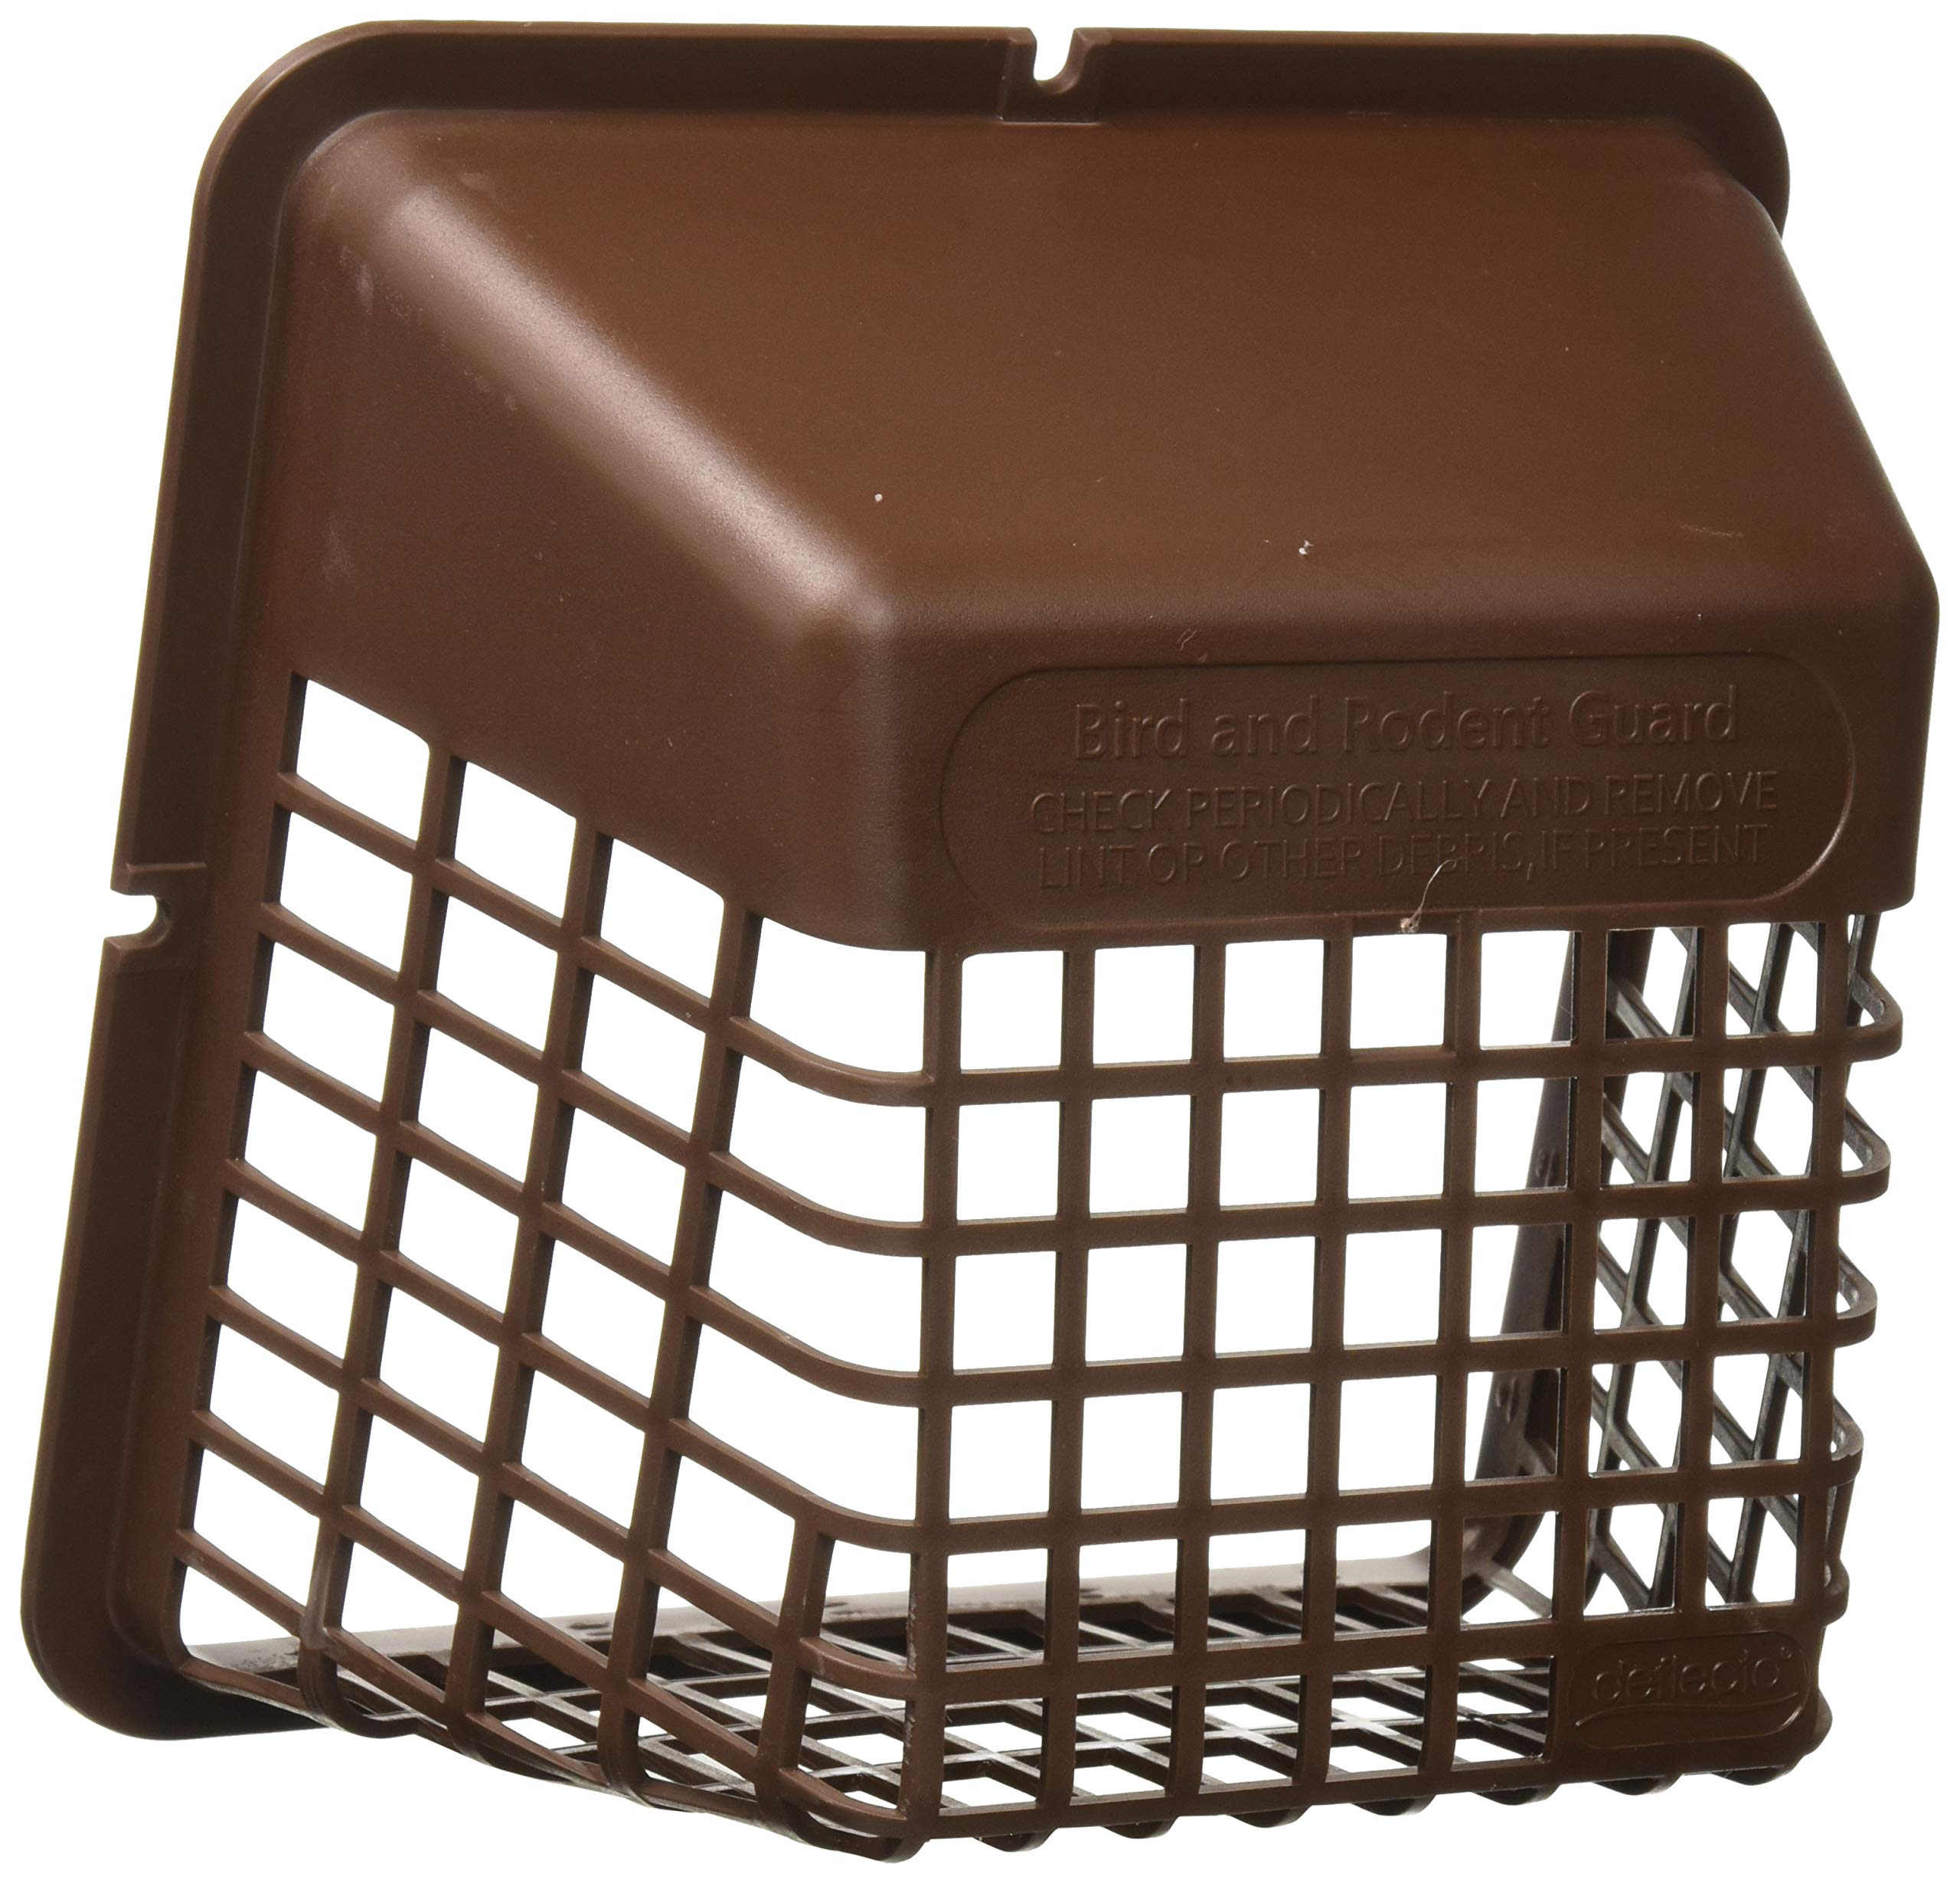 Deflecto Universal Bird Guard Dryer Vent Cover, For Use with 4 Inches Clothes Dryer Vents, Brown (UBGBB)